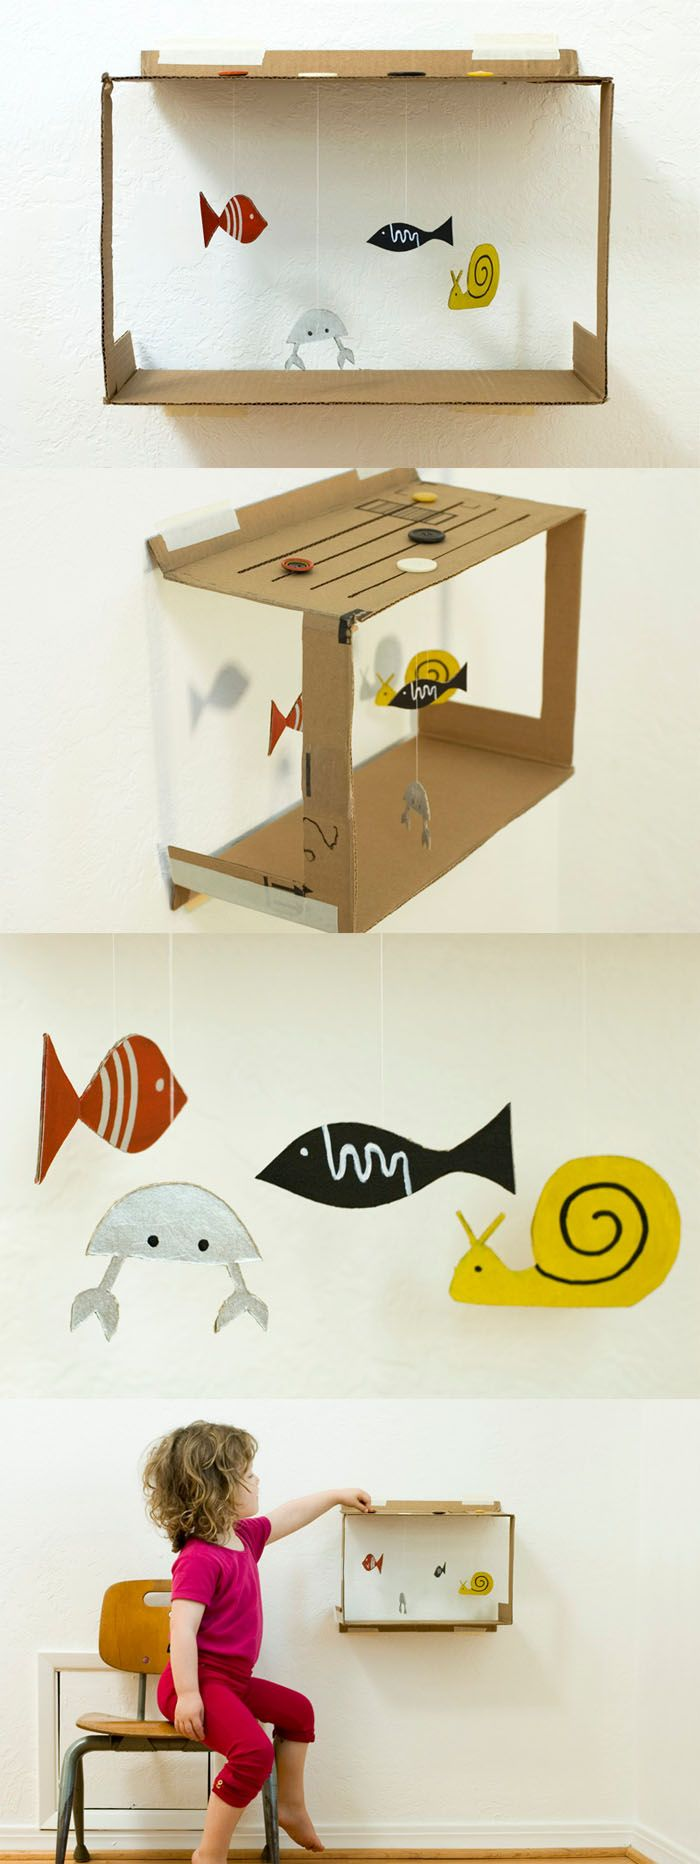 1000 ideas about carton box on pinterest cute box diy for What to do with old mailbox